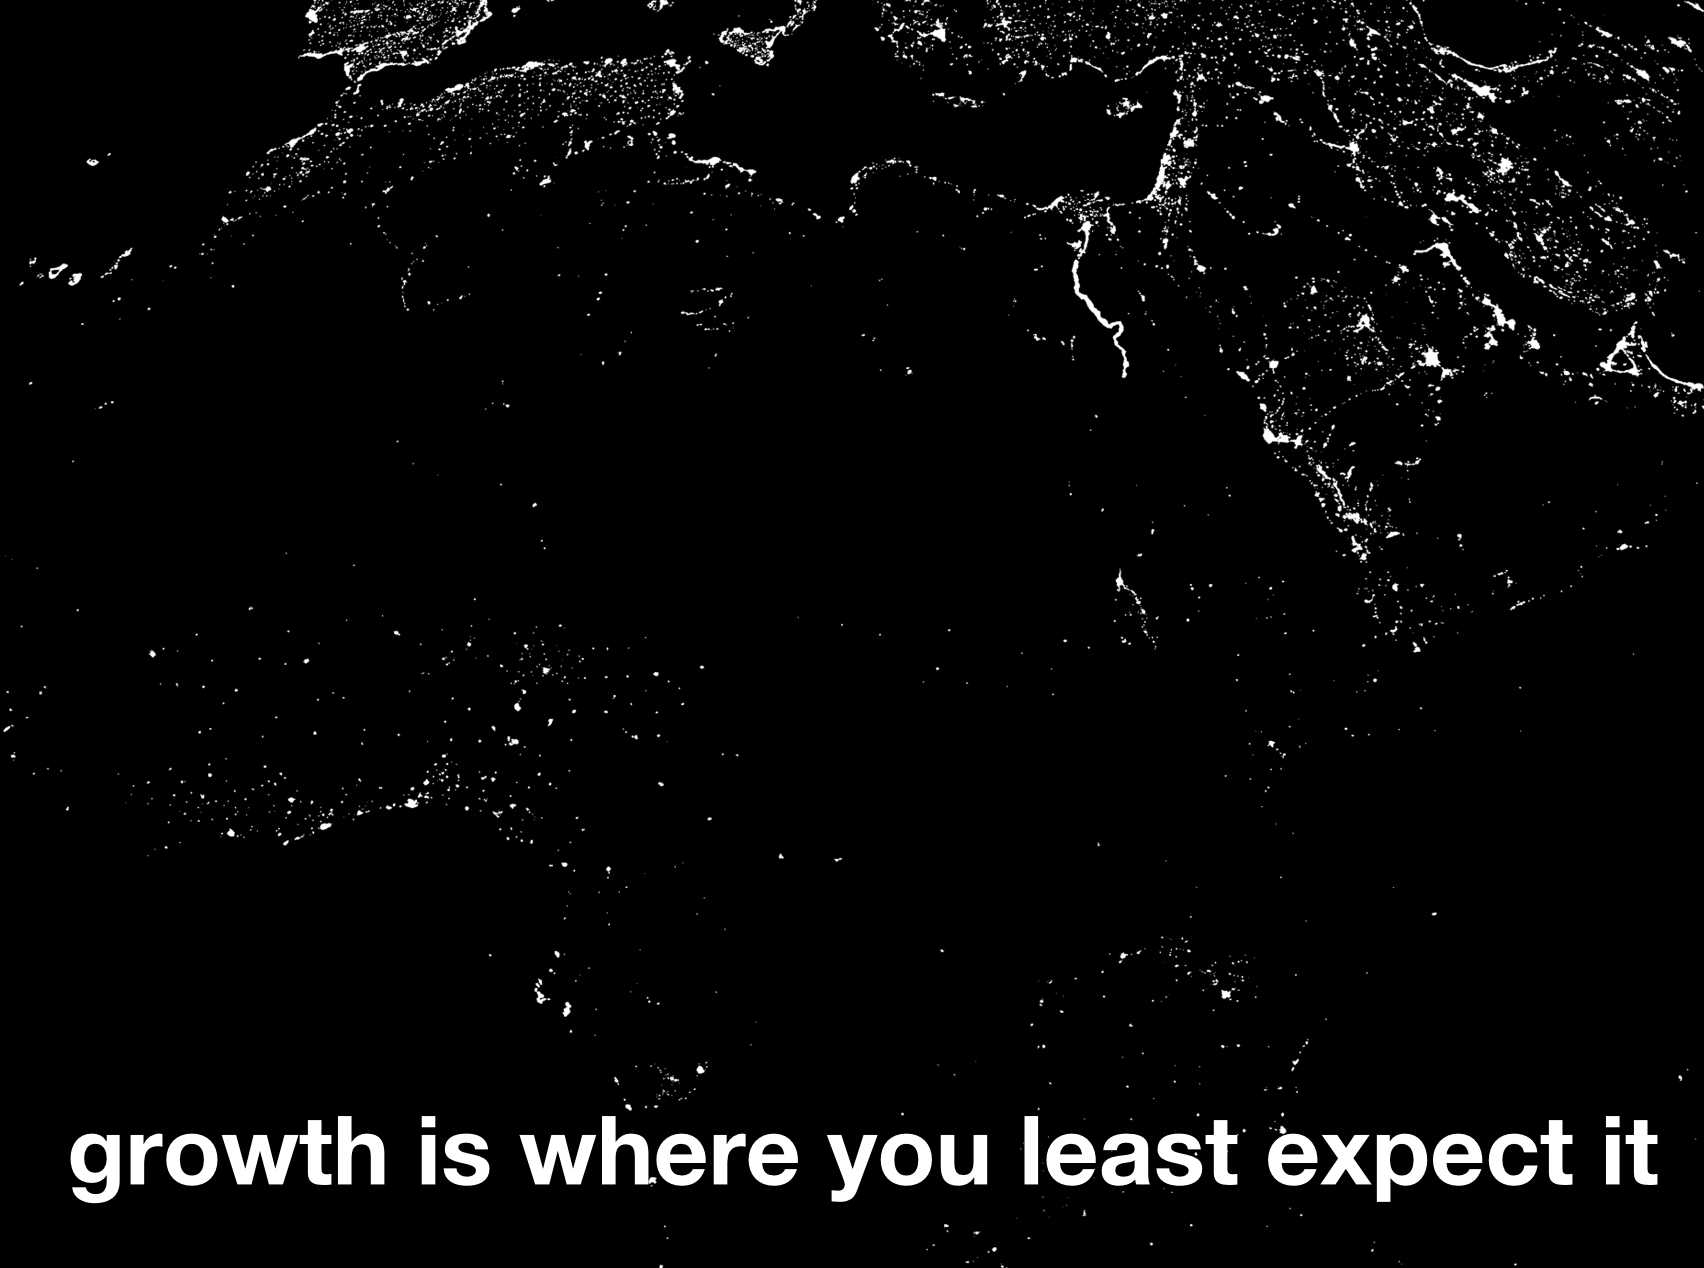 Growth is where you least expect it